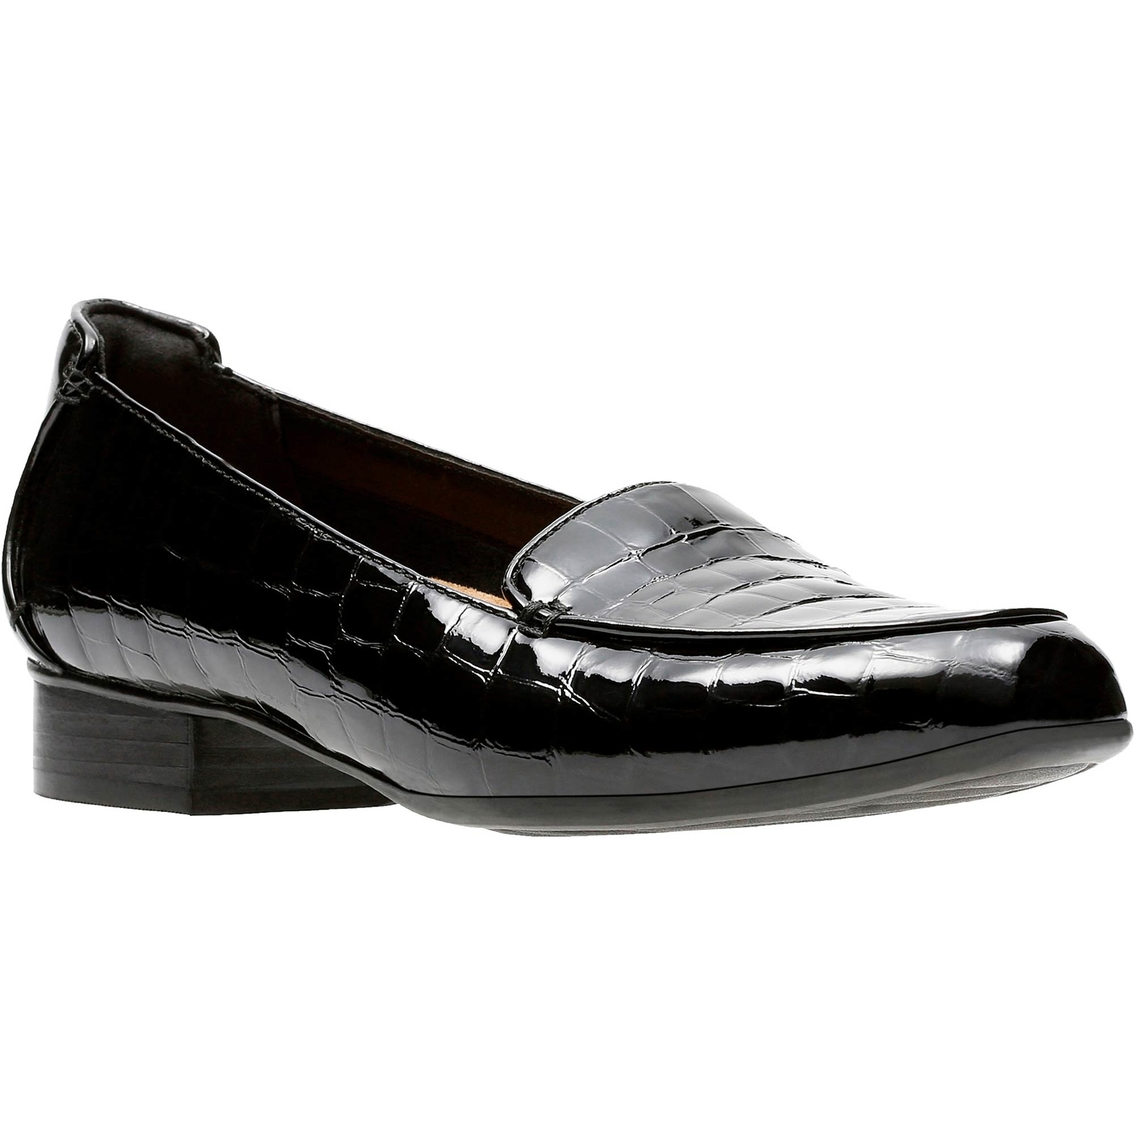 984a90b0f81 Clarks Keesha Luca Croc Patent Leather Slip On Shoes